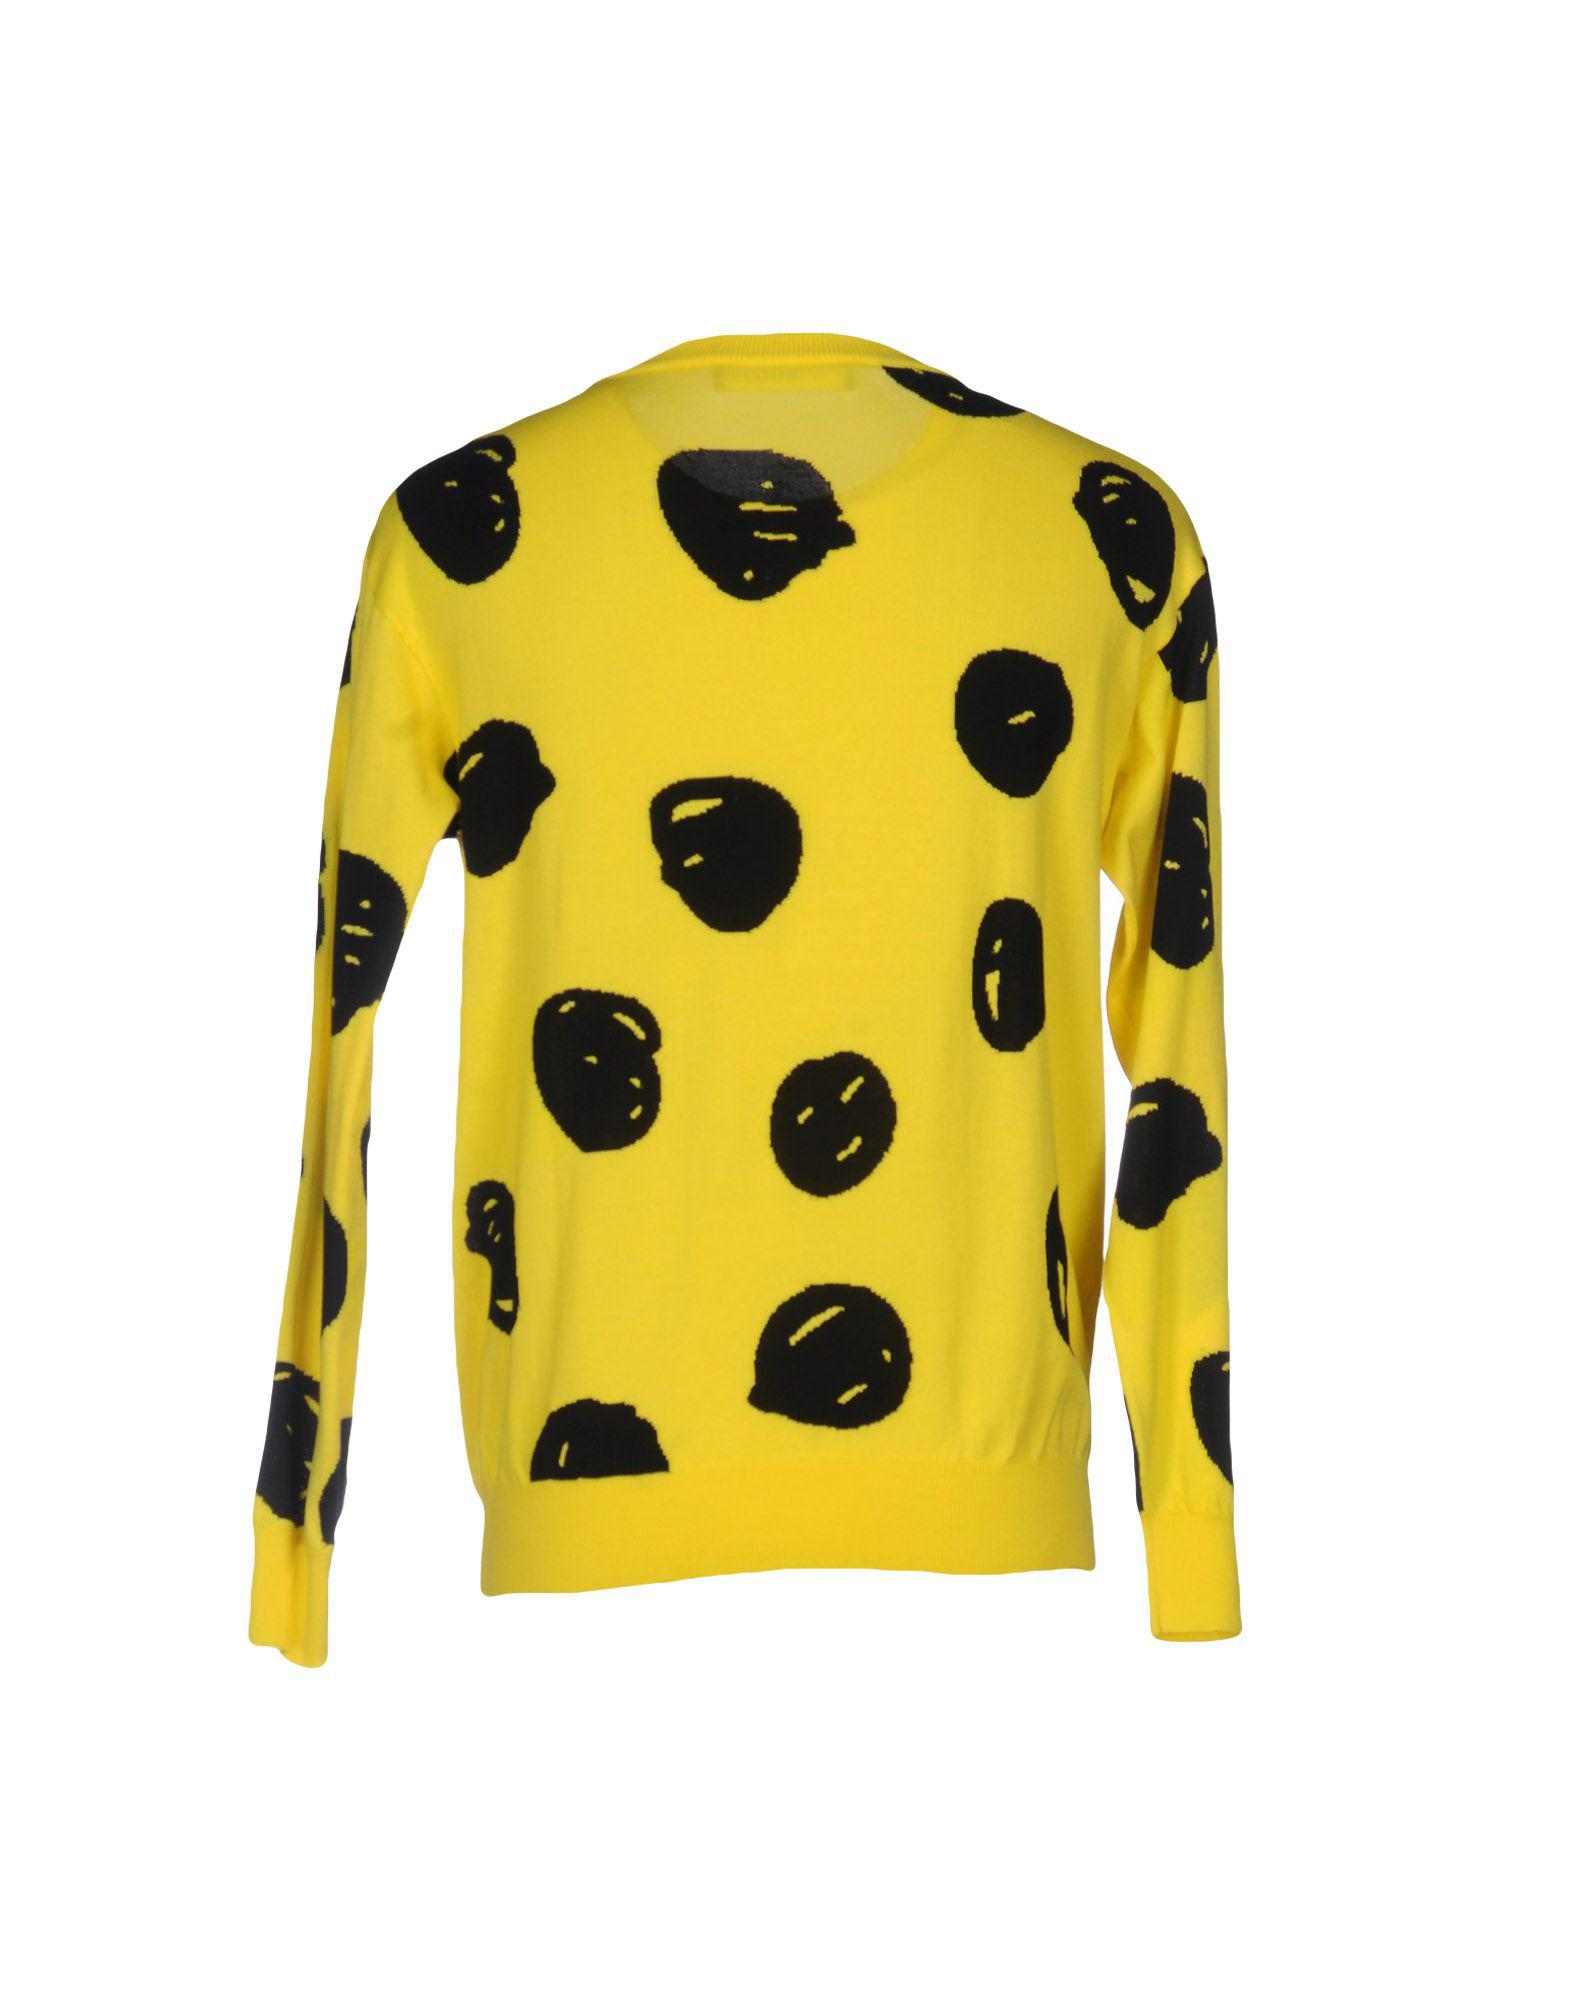 09ddb8d600ba Lyst - Jeremy Scott Jumper in Yellow for Men